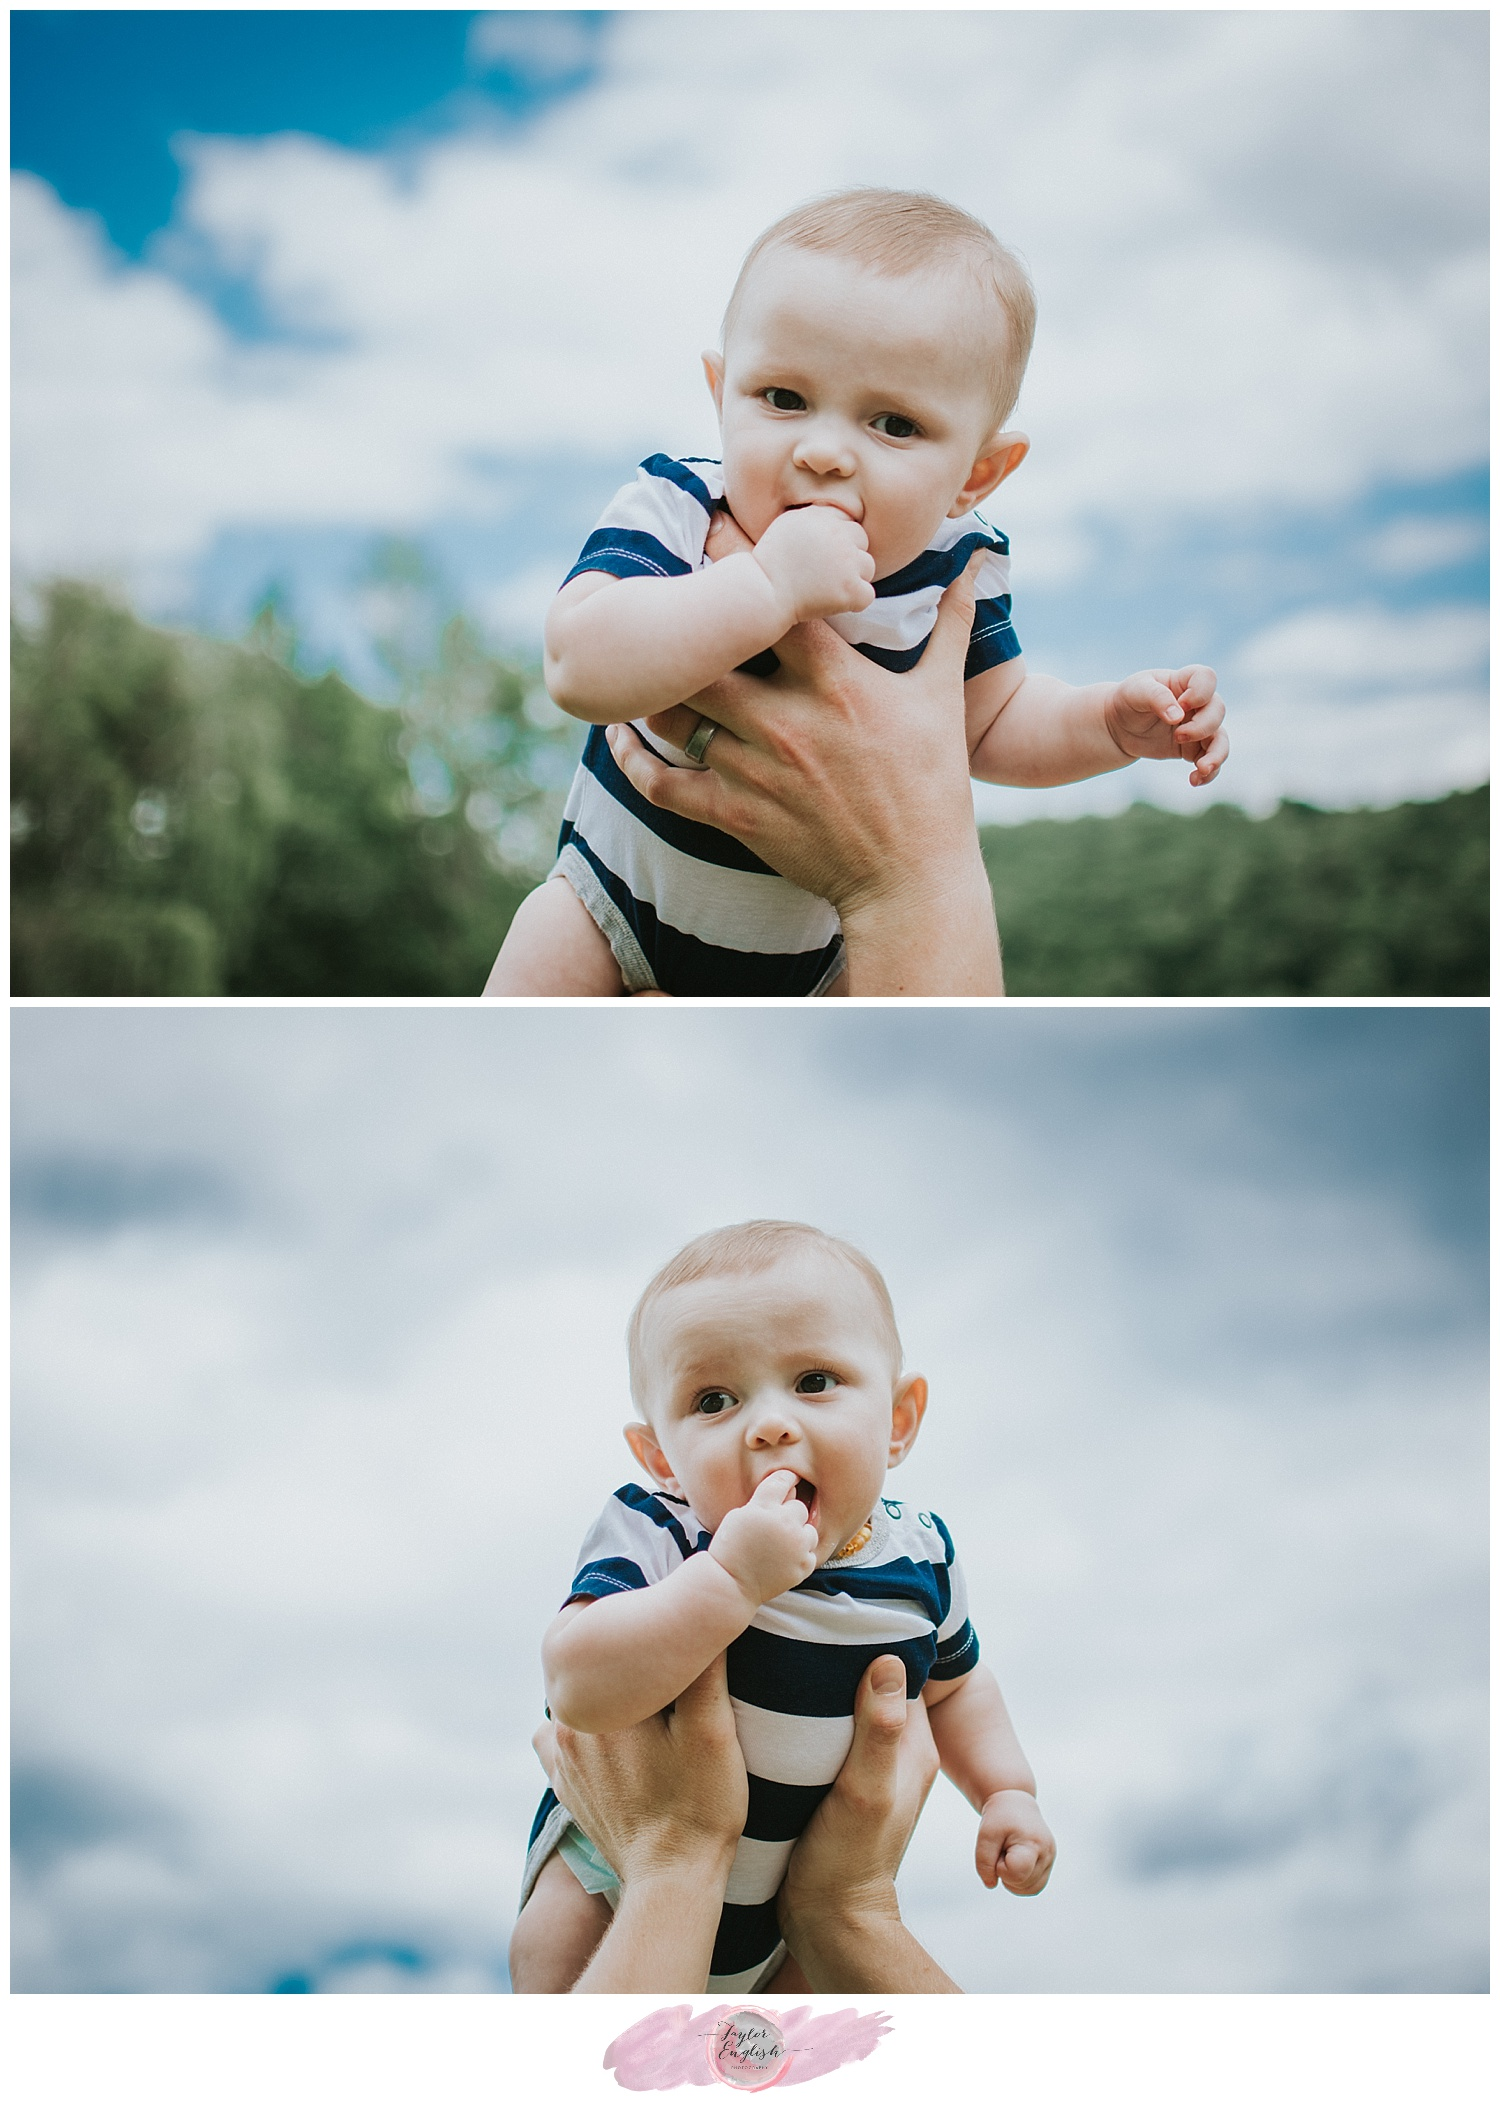 taylor-english-photography-tennessee-family-photography9